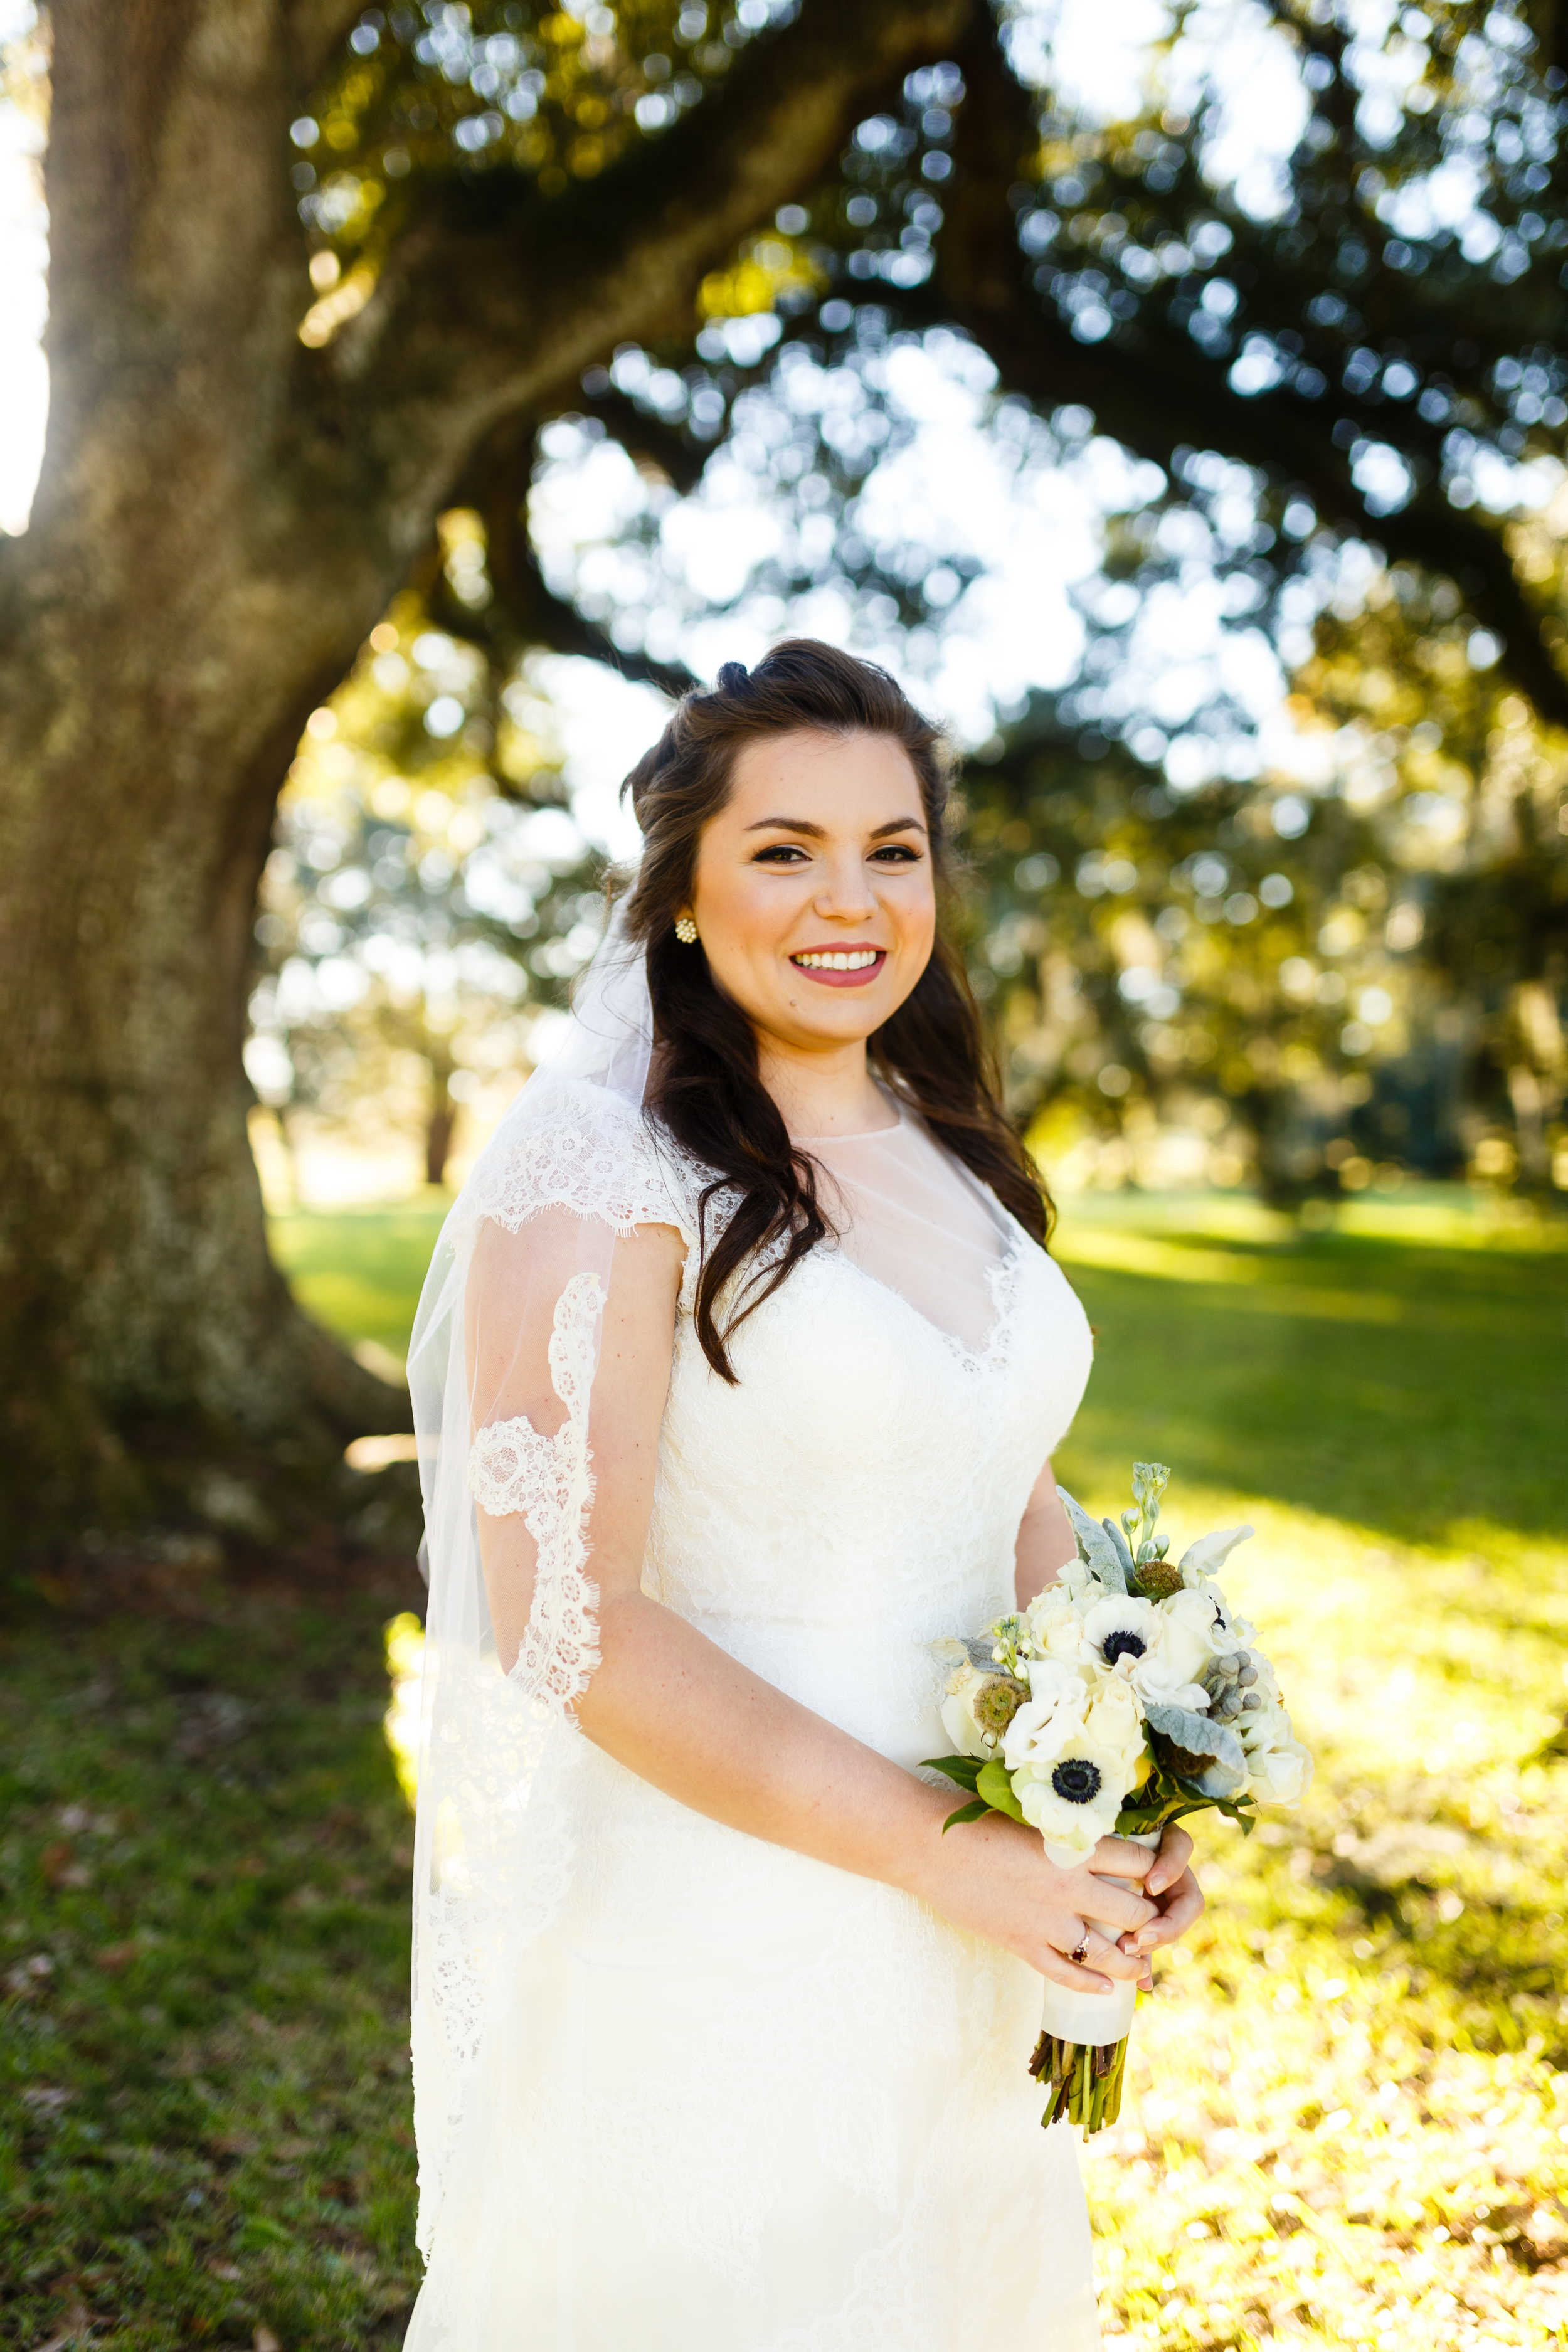 Bridal-wedding-portrait-lafayette-broussard-youngsville-photographer-3.jpg